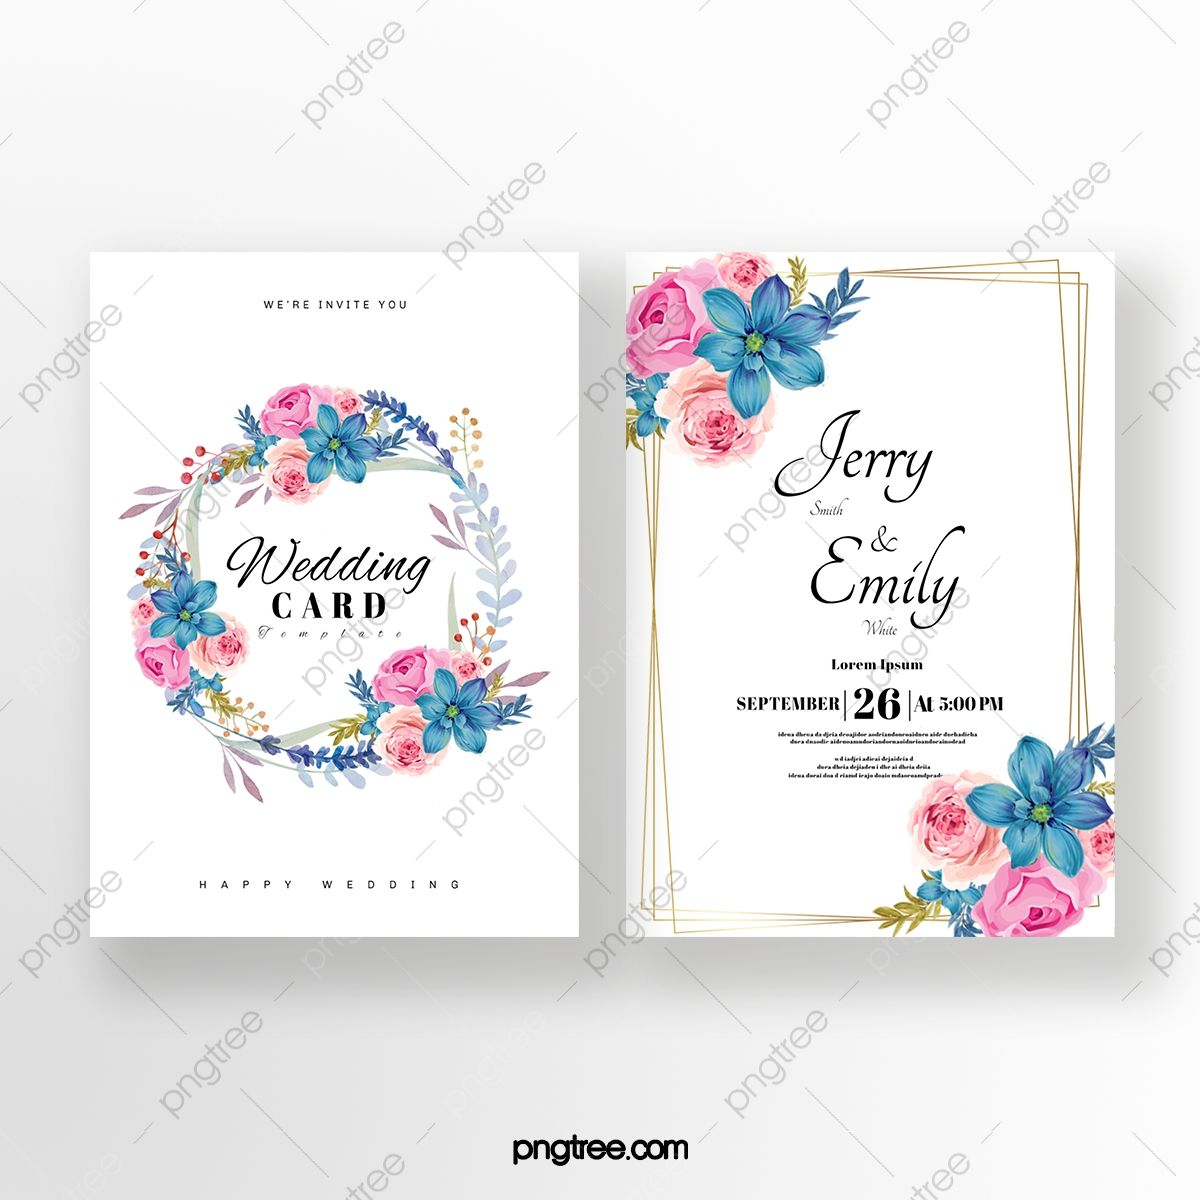 Exquisite Flower Double Sided Wedding Invitation In 2021 Wedding Invitations Typography Wedding Invitations Wedding Invitation Templates